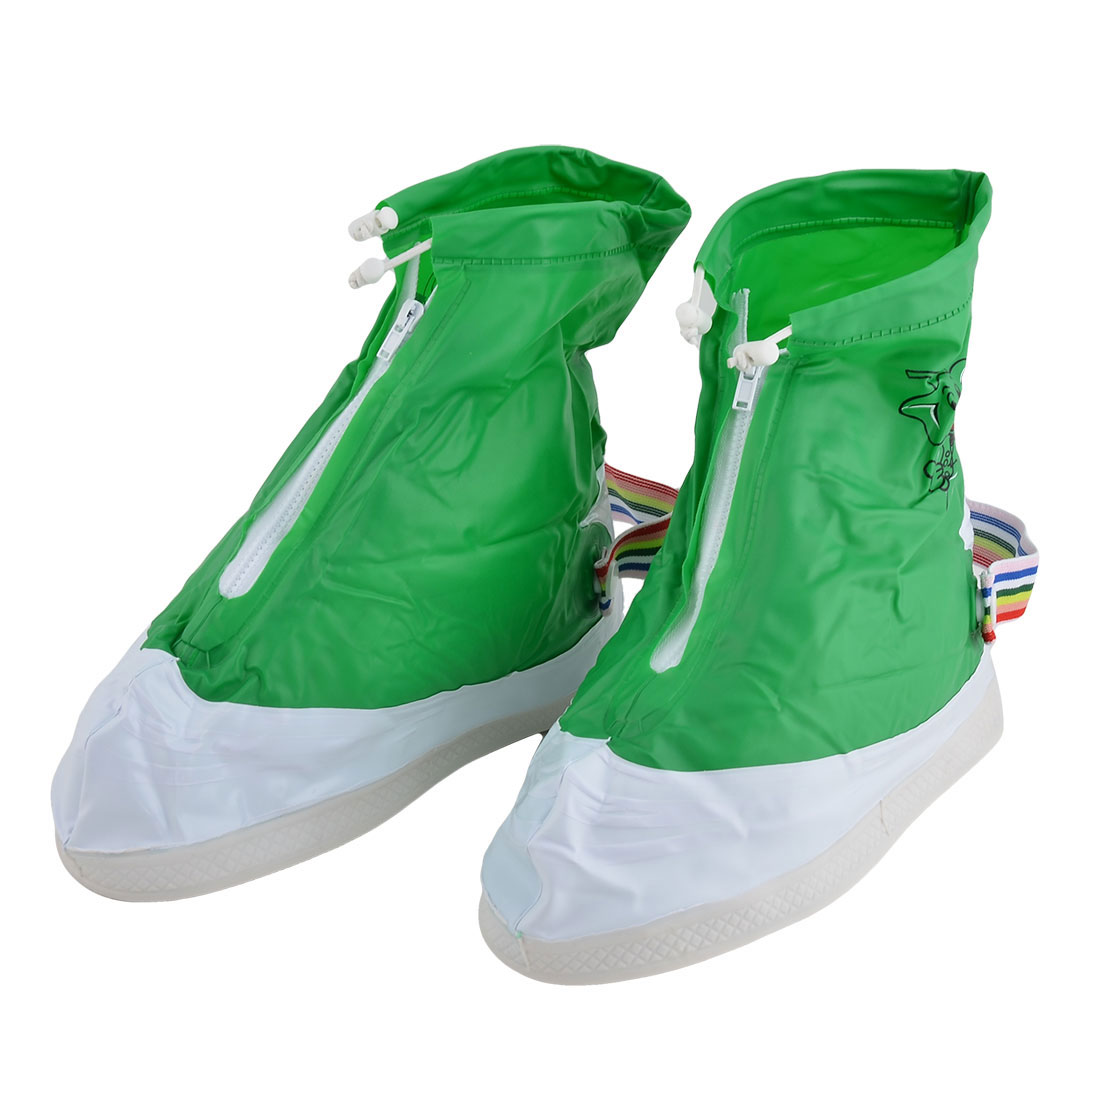 Lady PVC Elephant Pattern Water Mud Dirt Resistant Shoes Covers Green Pair US 9